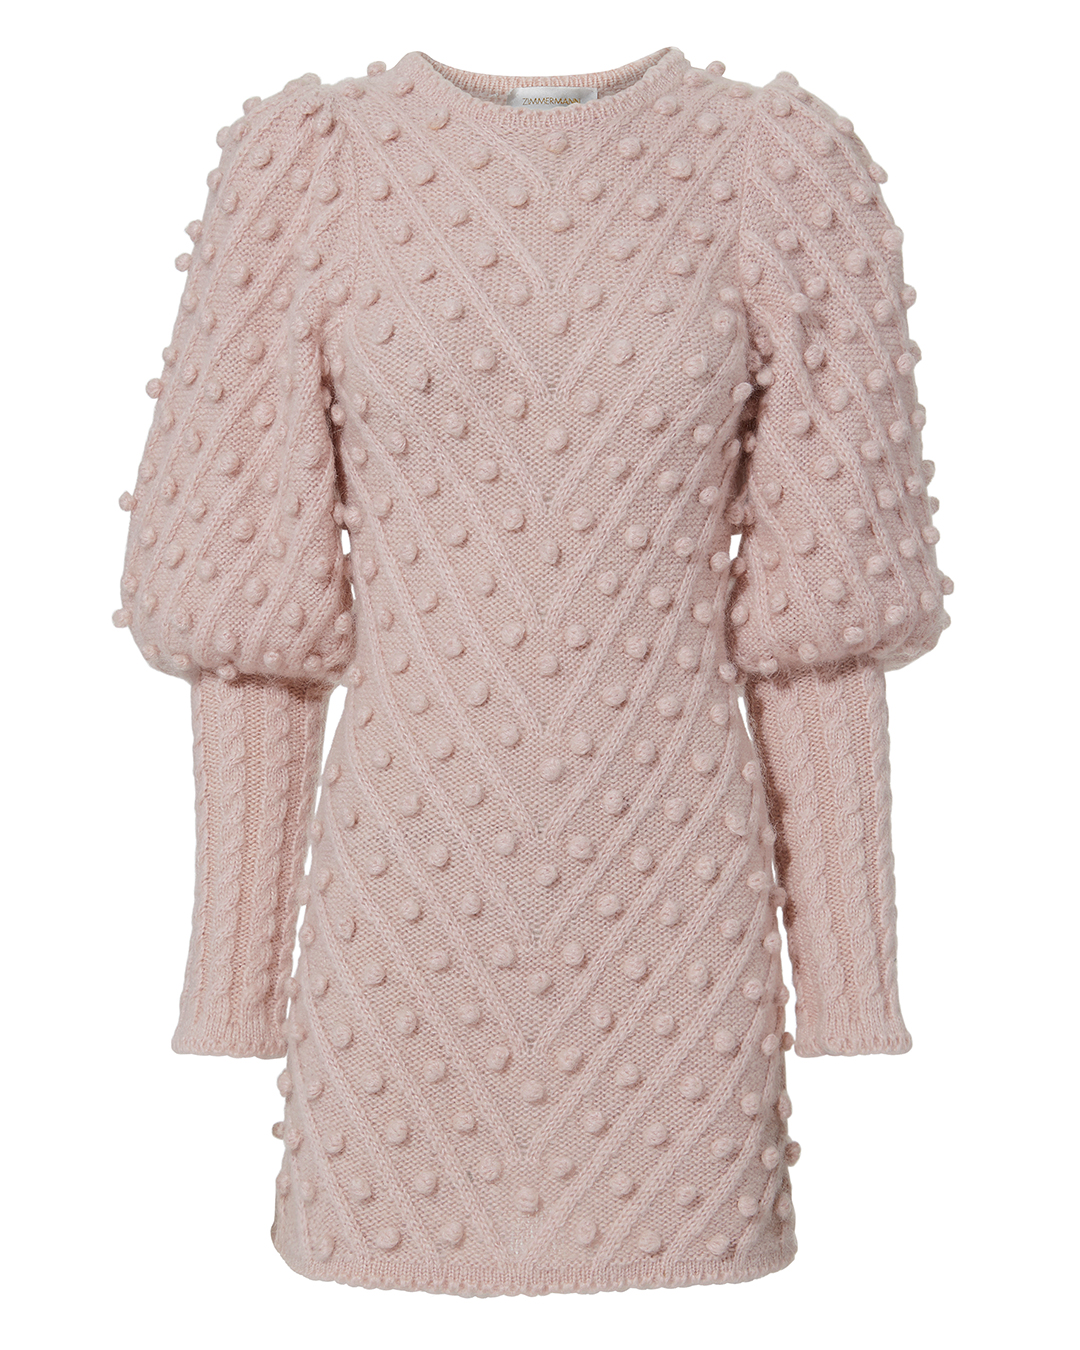 ZIMMERMANN FLEETING BAUBLE SWEATER DRESS PINK